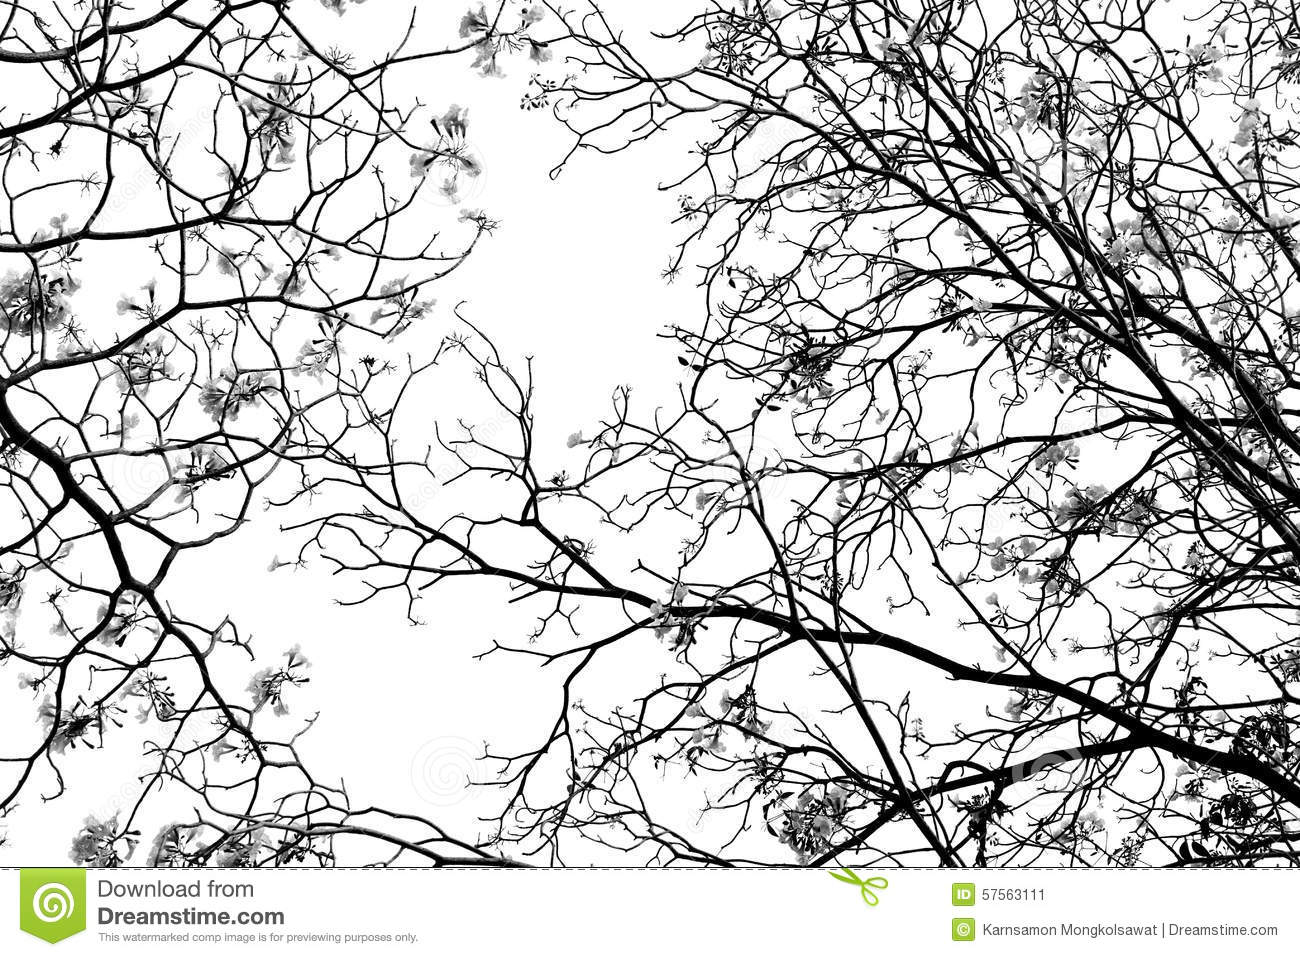 Leafless tree branch, black and white tone background